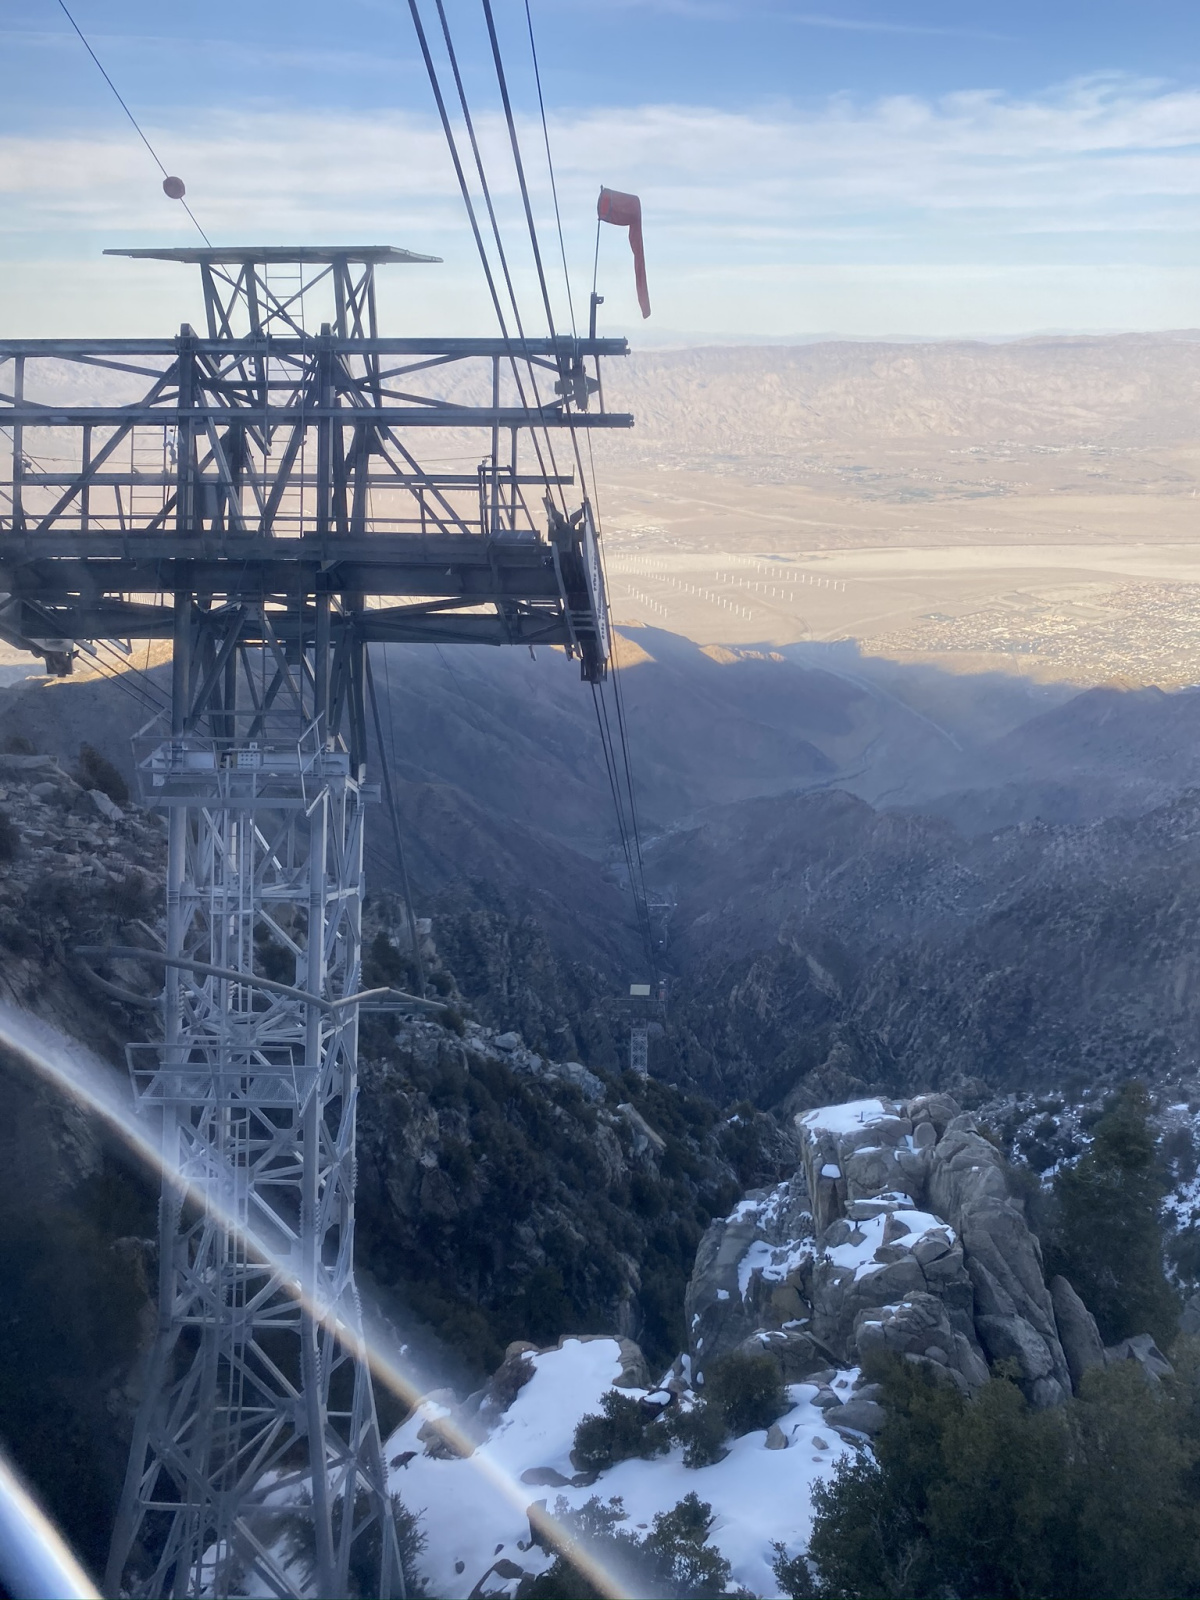 The view from the Palm Springs Aerial Tramway